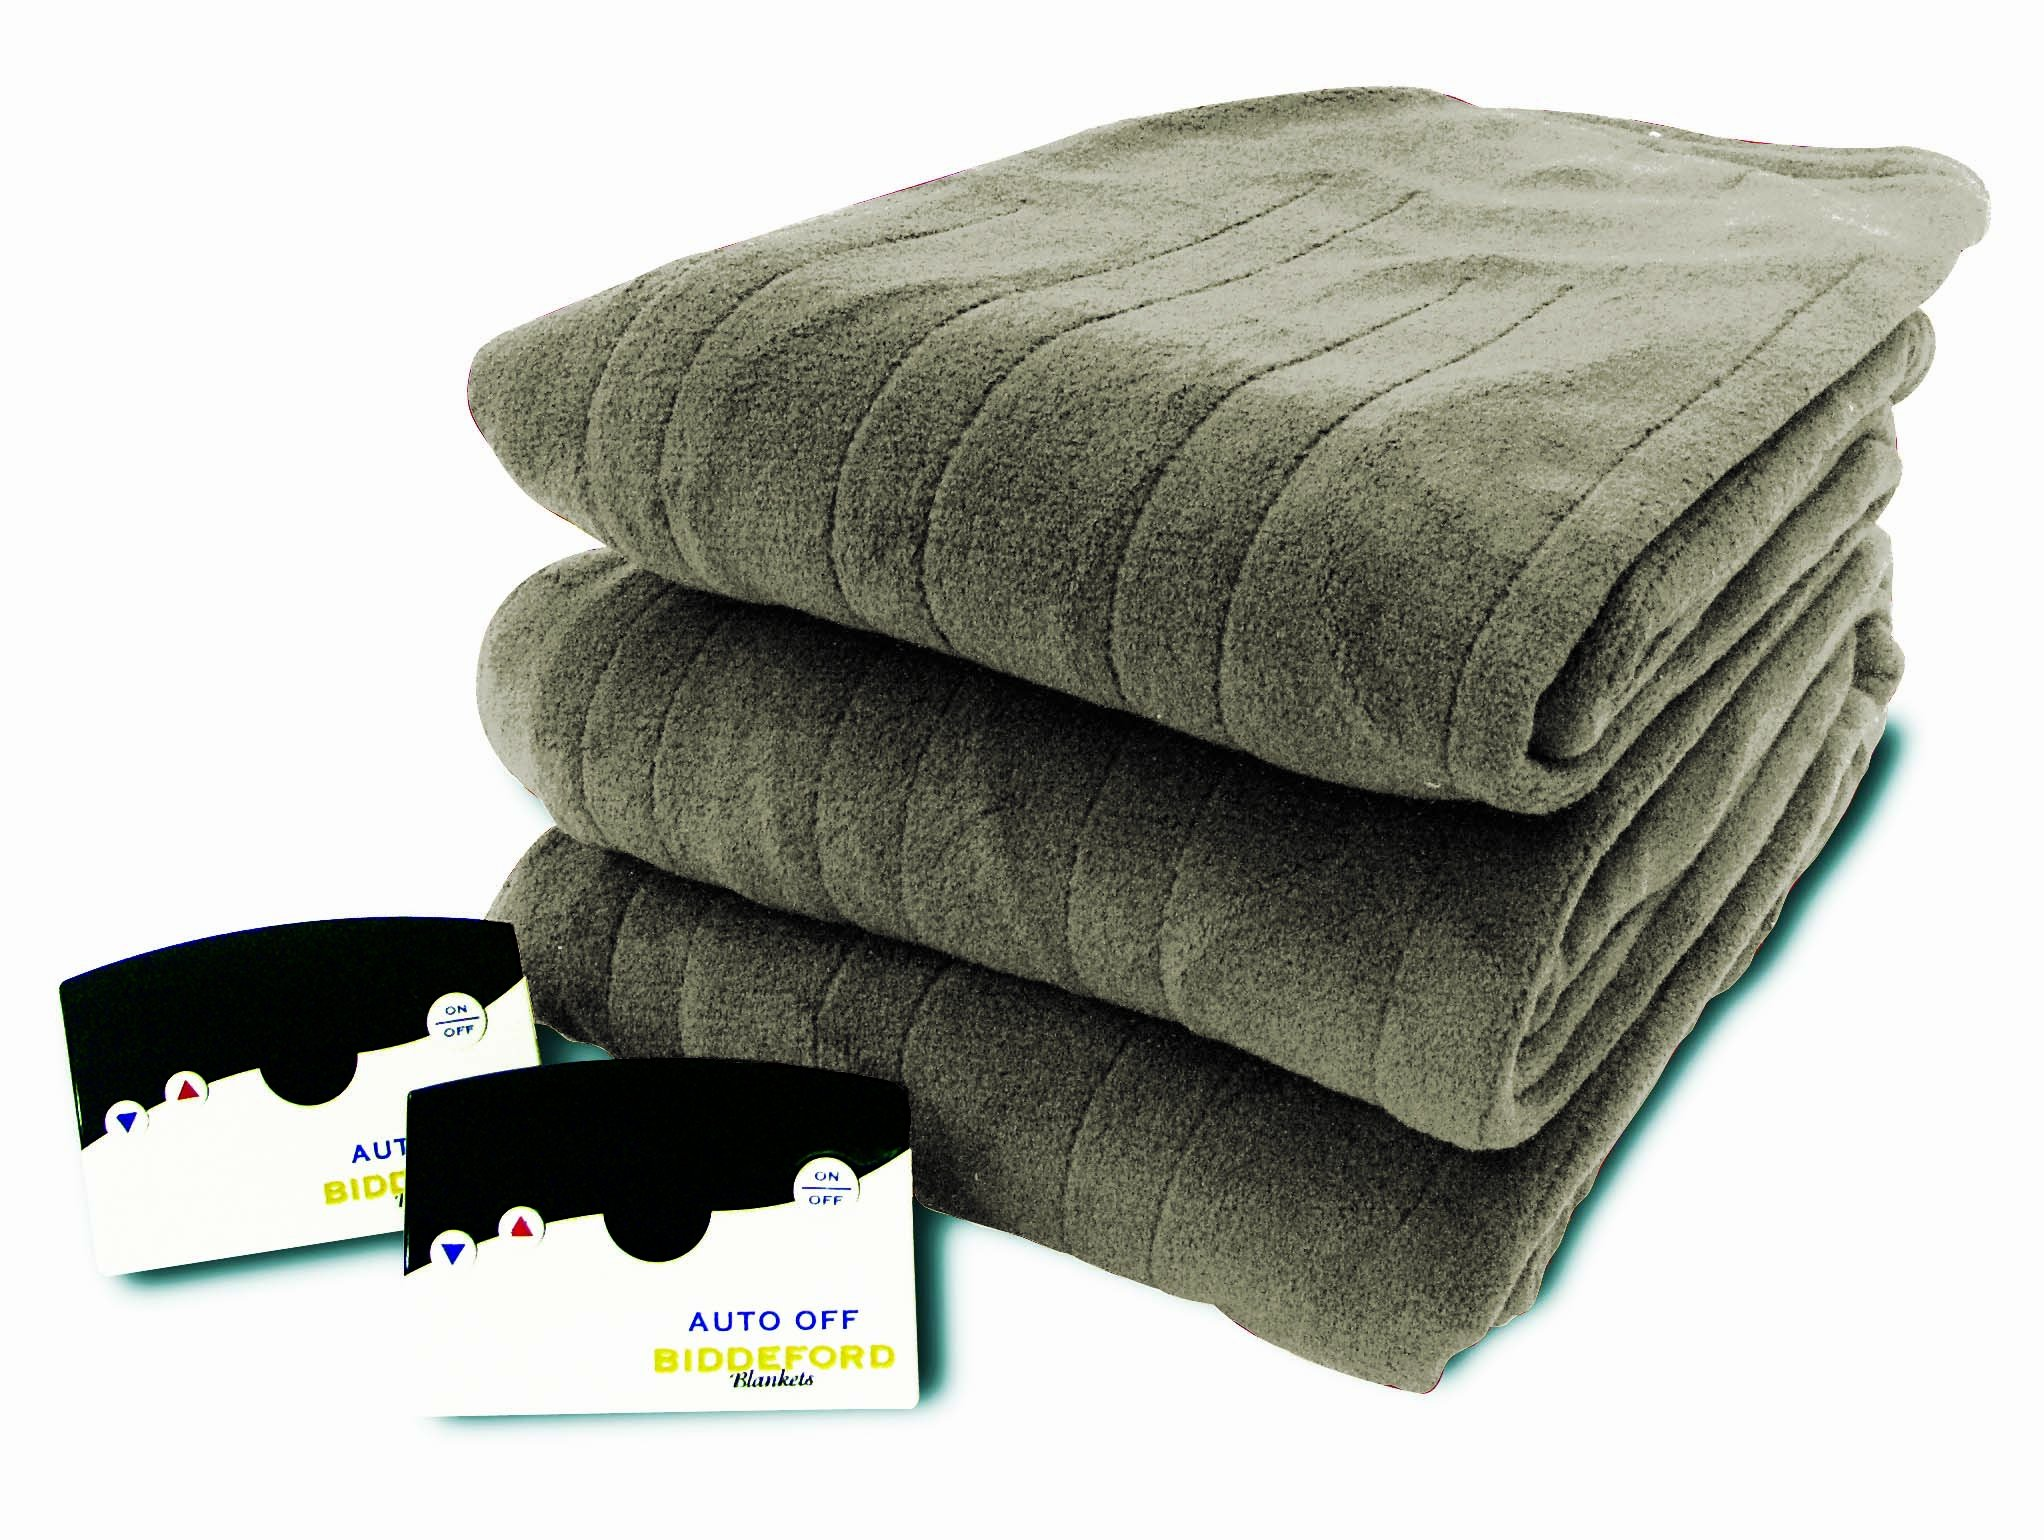 Biddeford 2023-905291-633 Electric Heated Knit MicroPlush Blanket, Queen, Sage